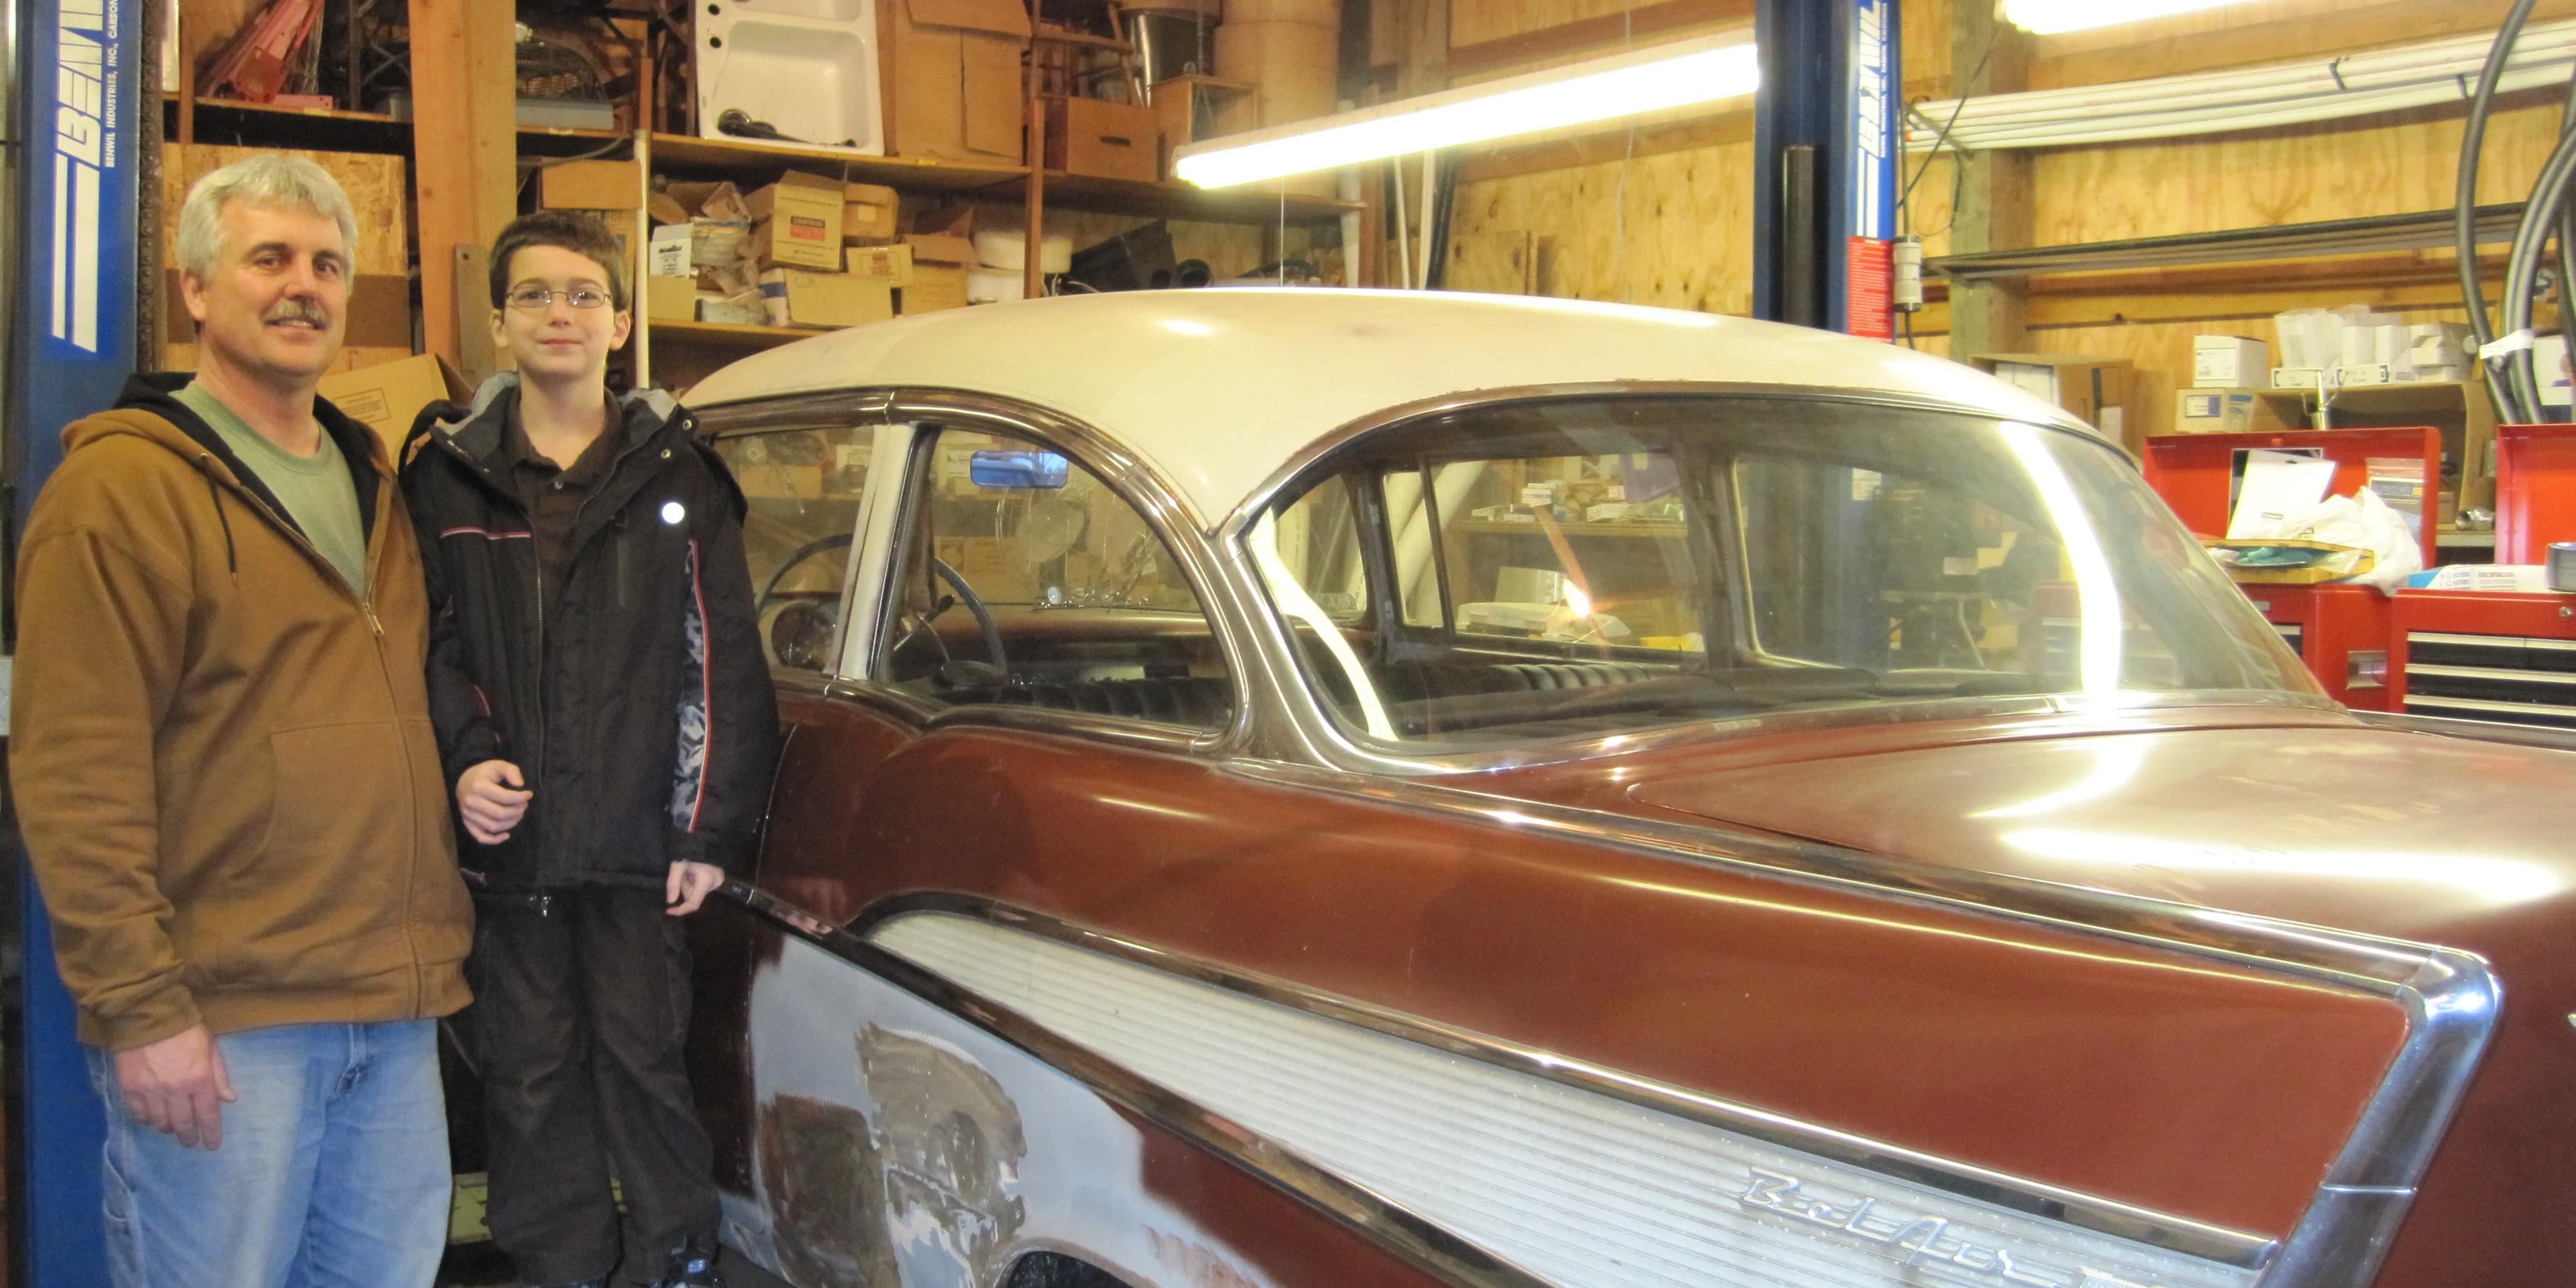 Ohiosnow's 1957 Chevrolet Bel-Air